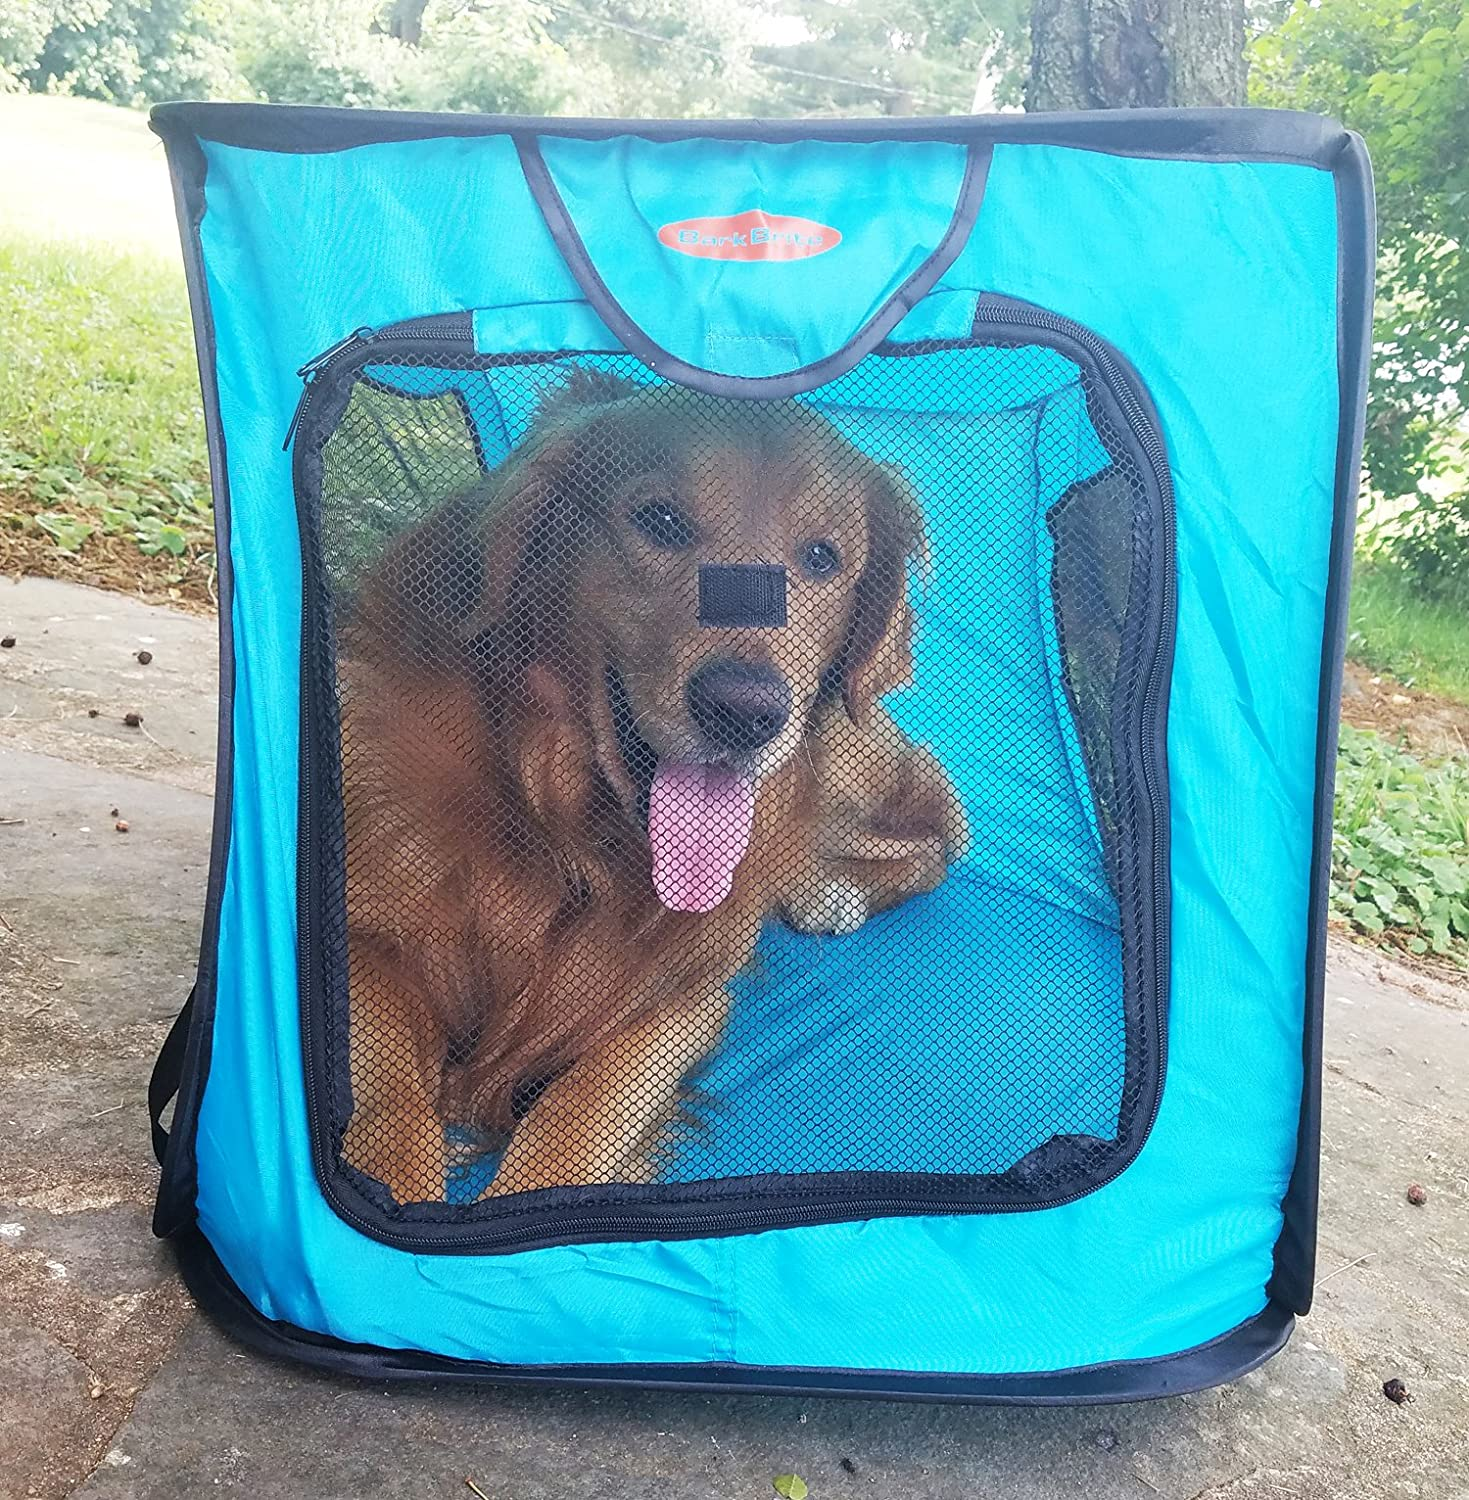 Amazon.com : Bark Brite Pop Open Collapsible Travel Crate in 2 Sizes ...